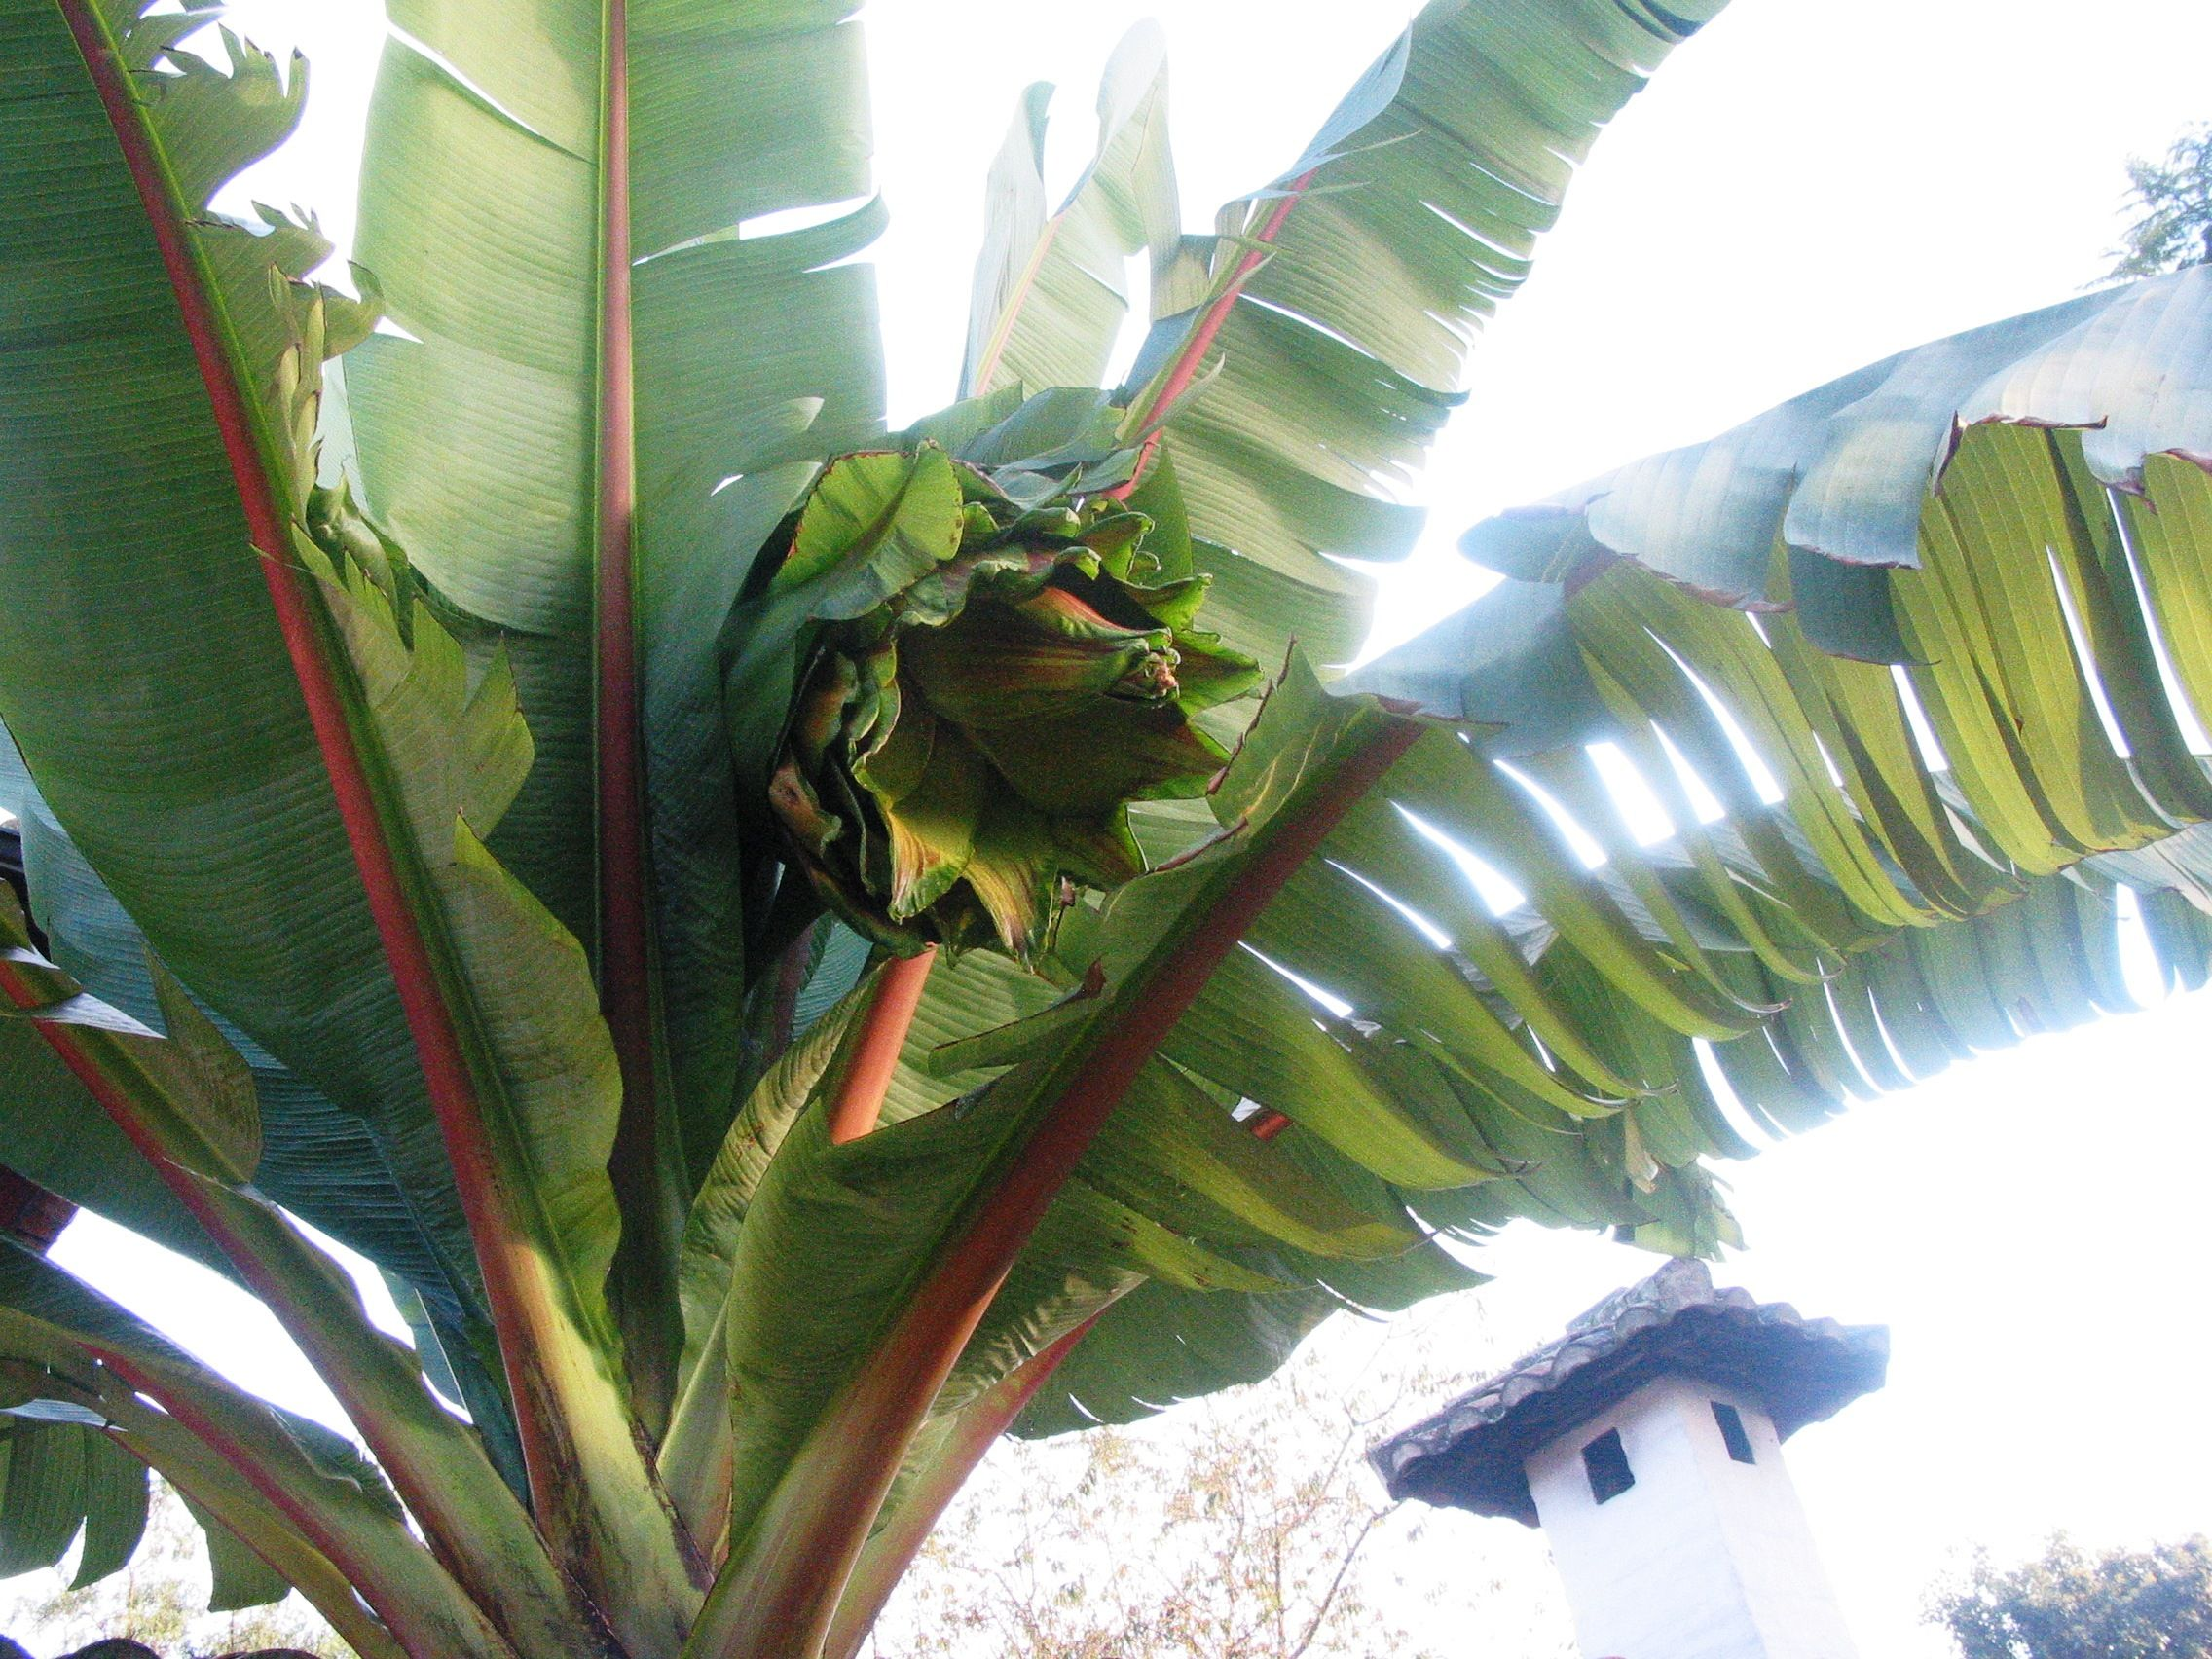 this is our biggest flower  the palm bearing it looks like a banana tree when small but grows to